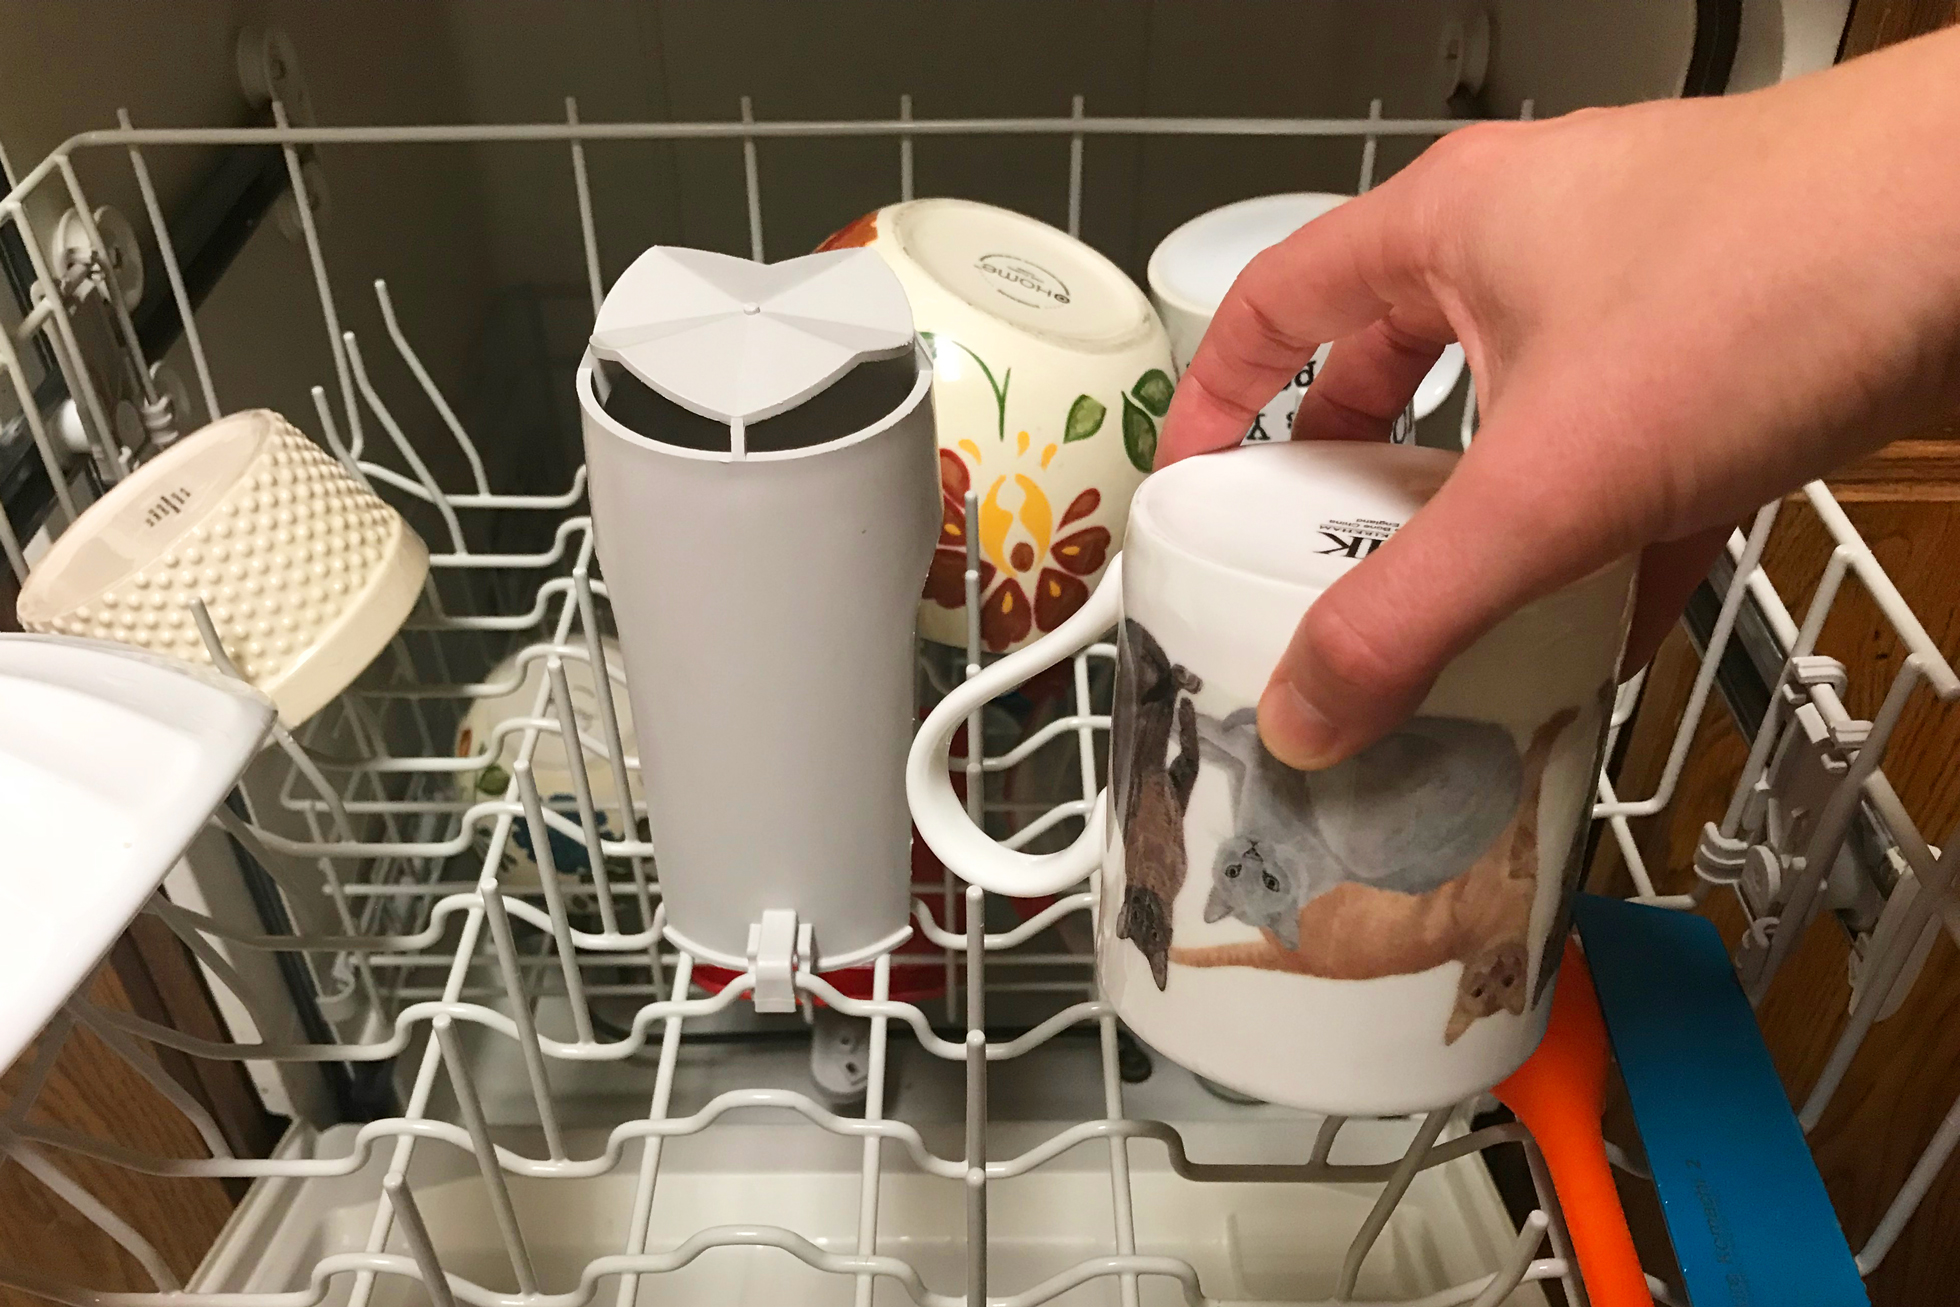 A hand putting a cat mug in a dishwasher